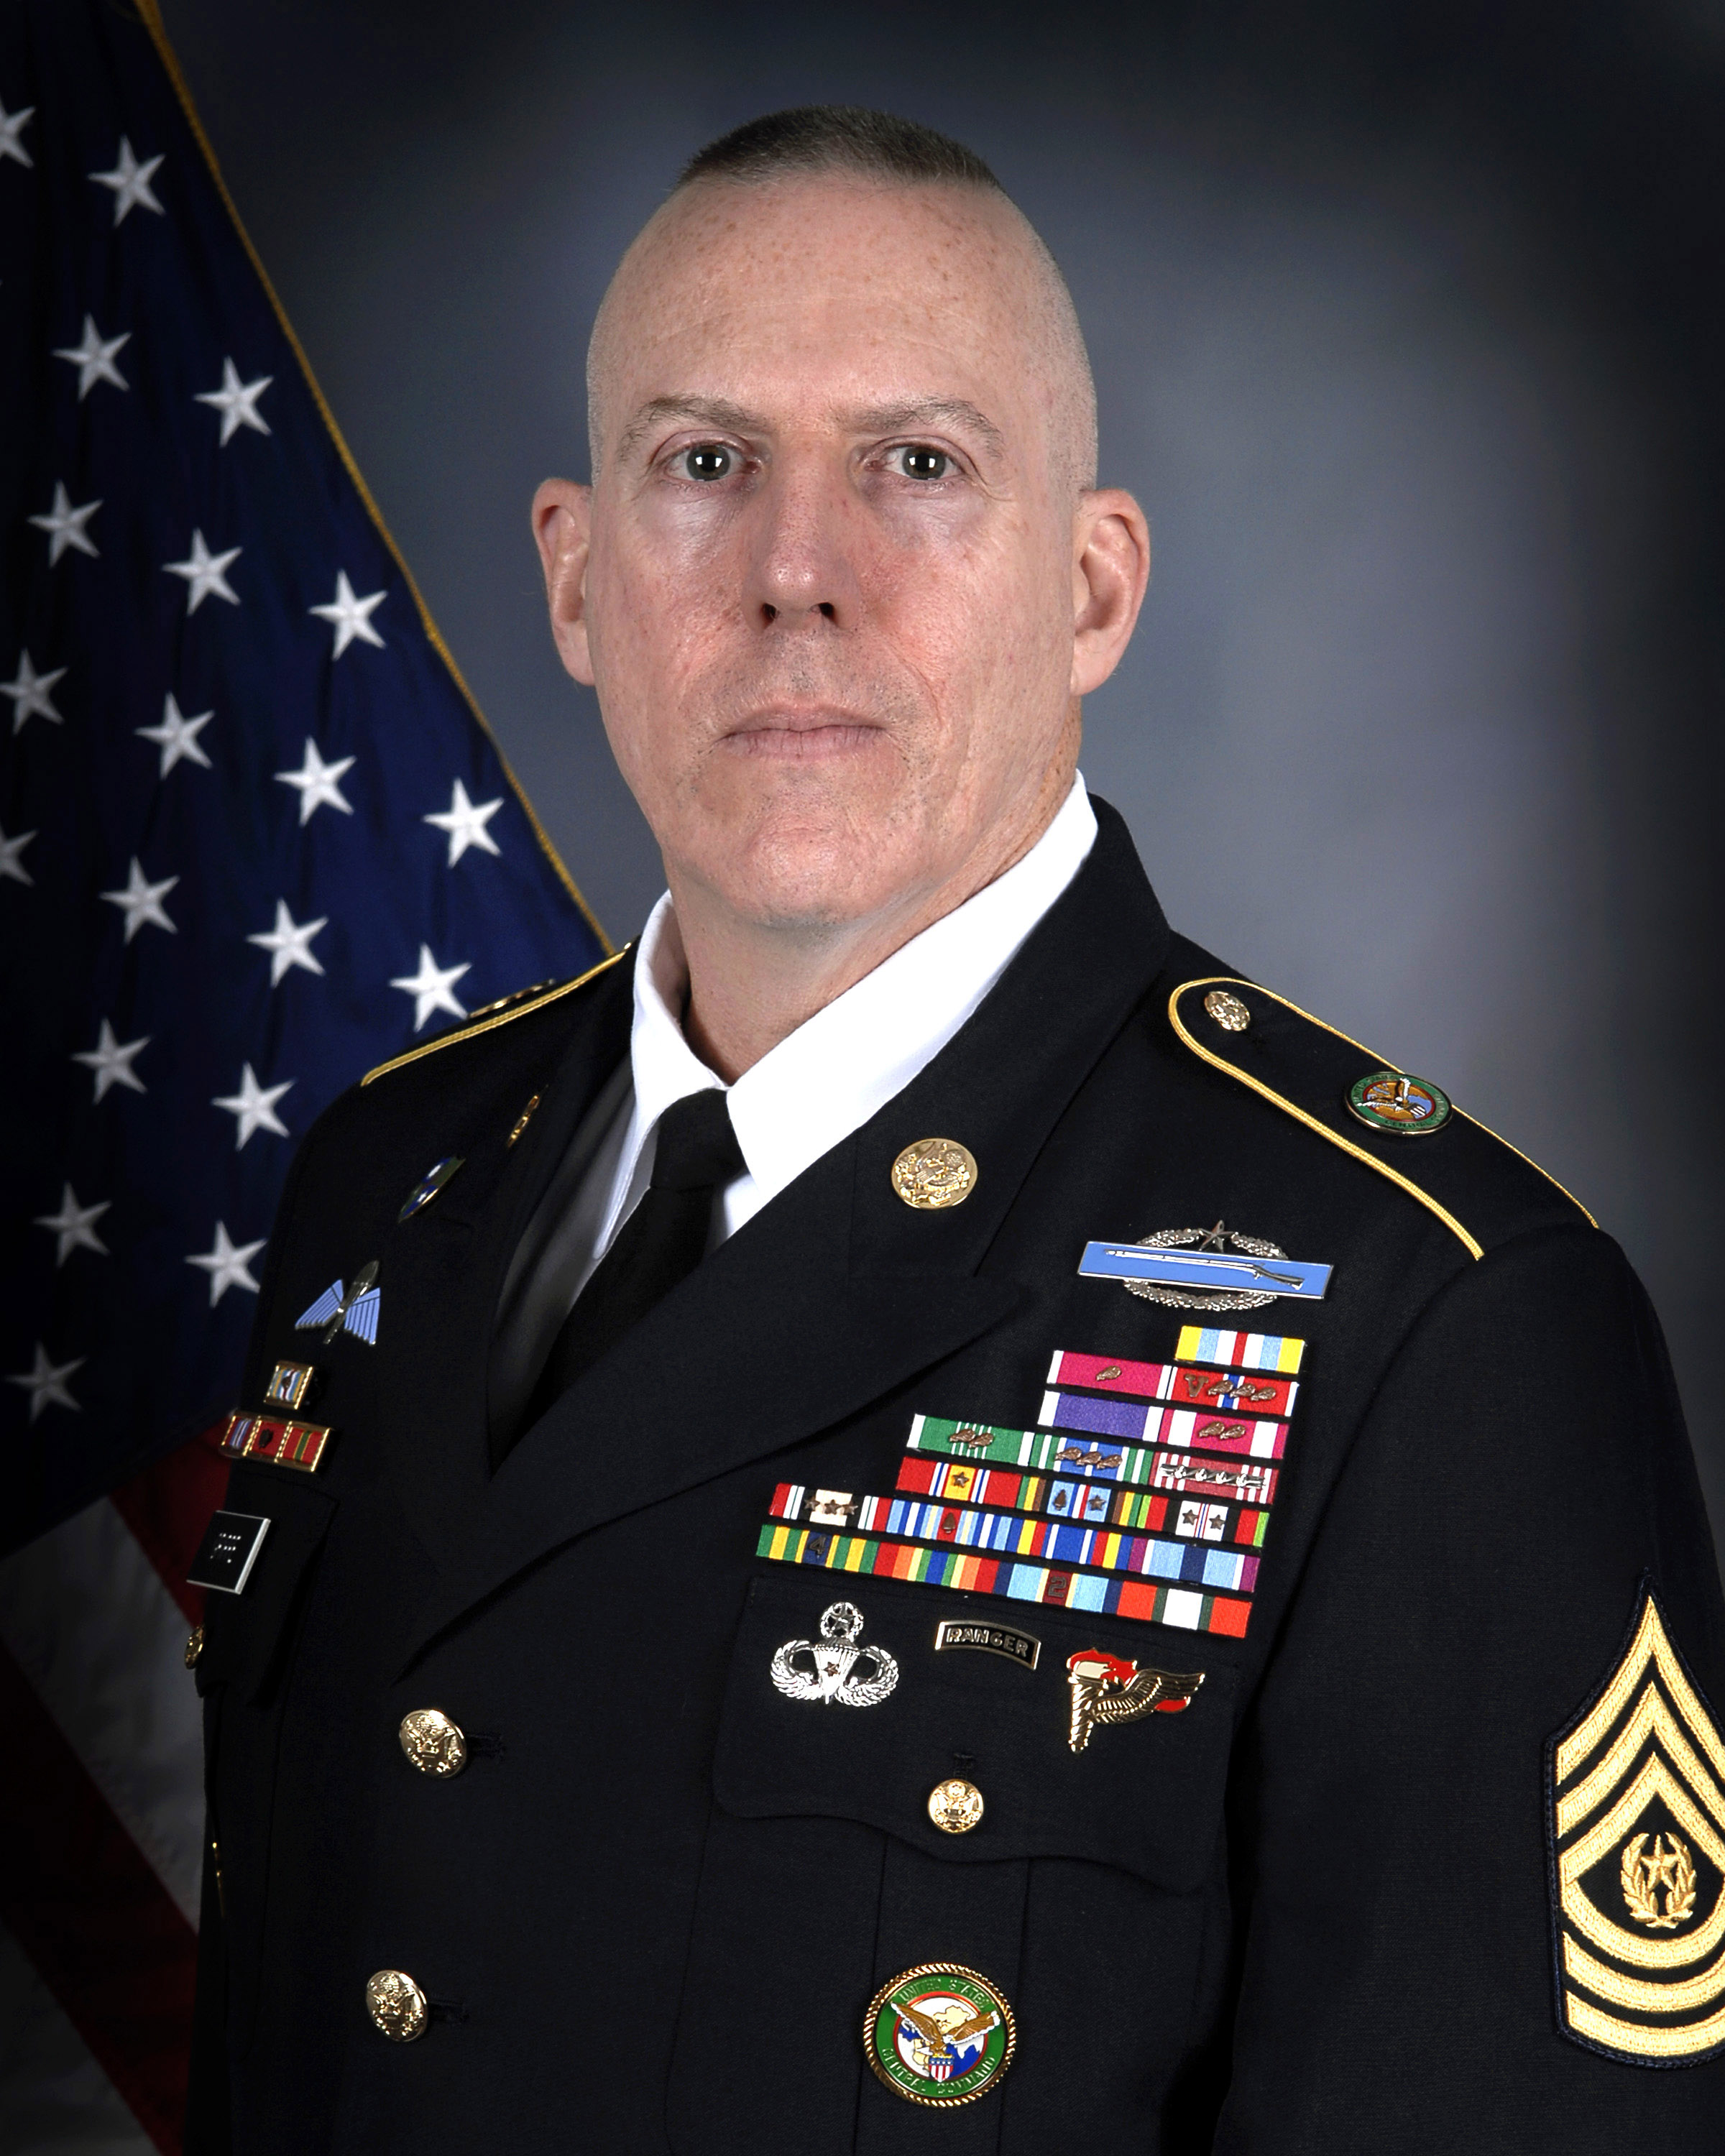 Frank Grippe (Command Sergeant Major)